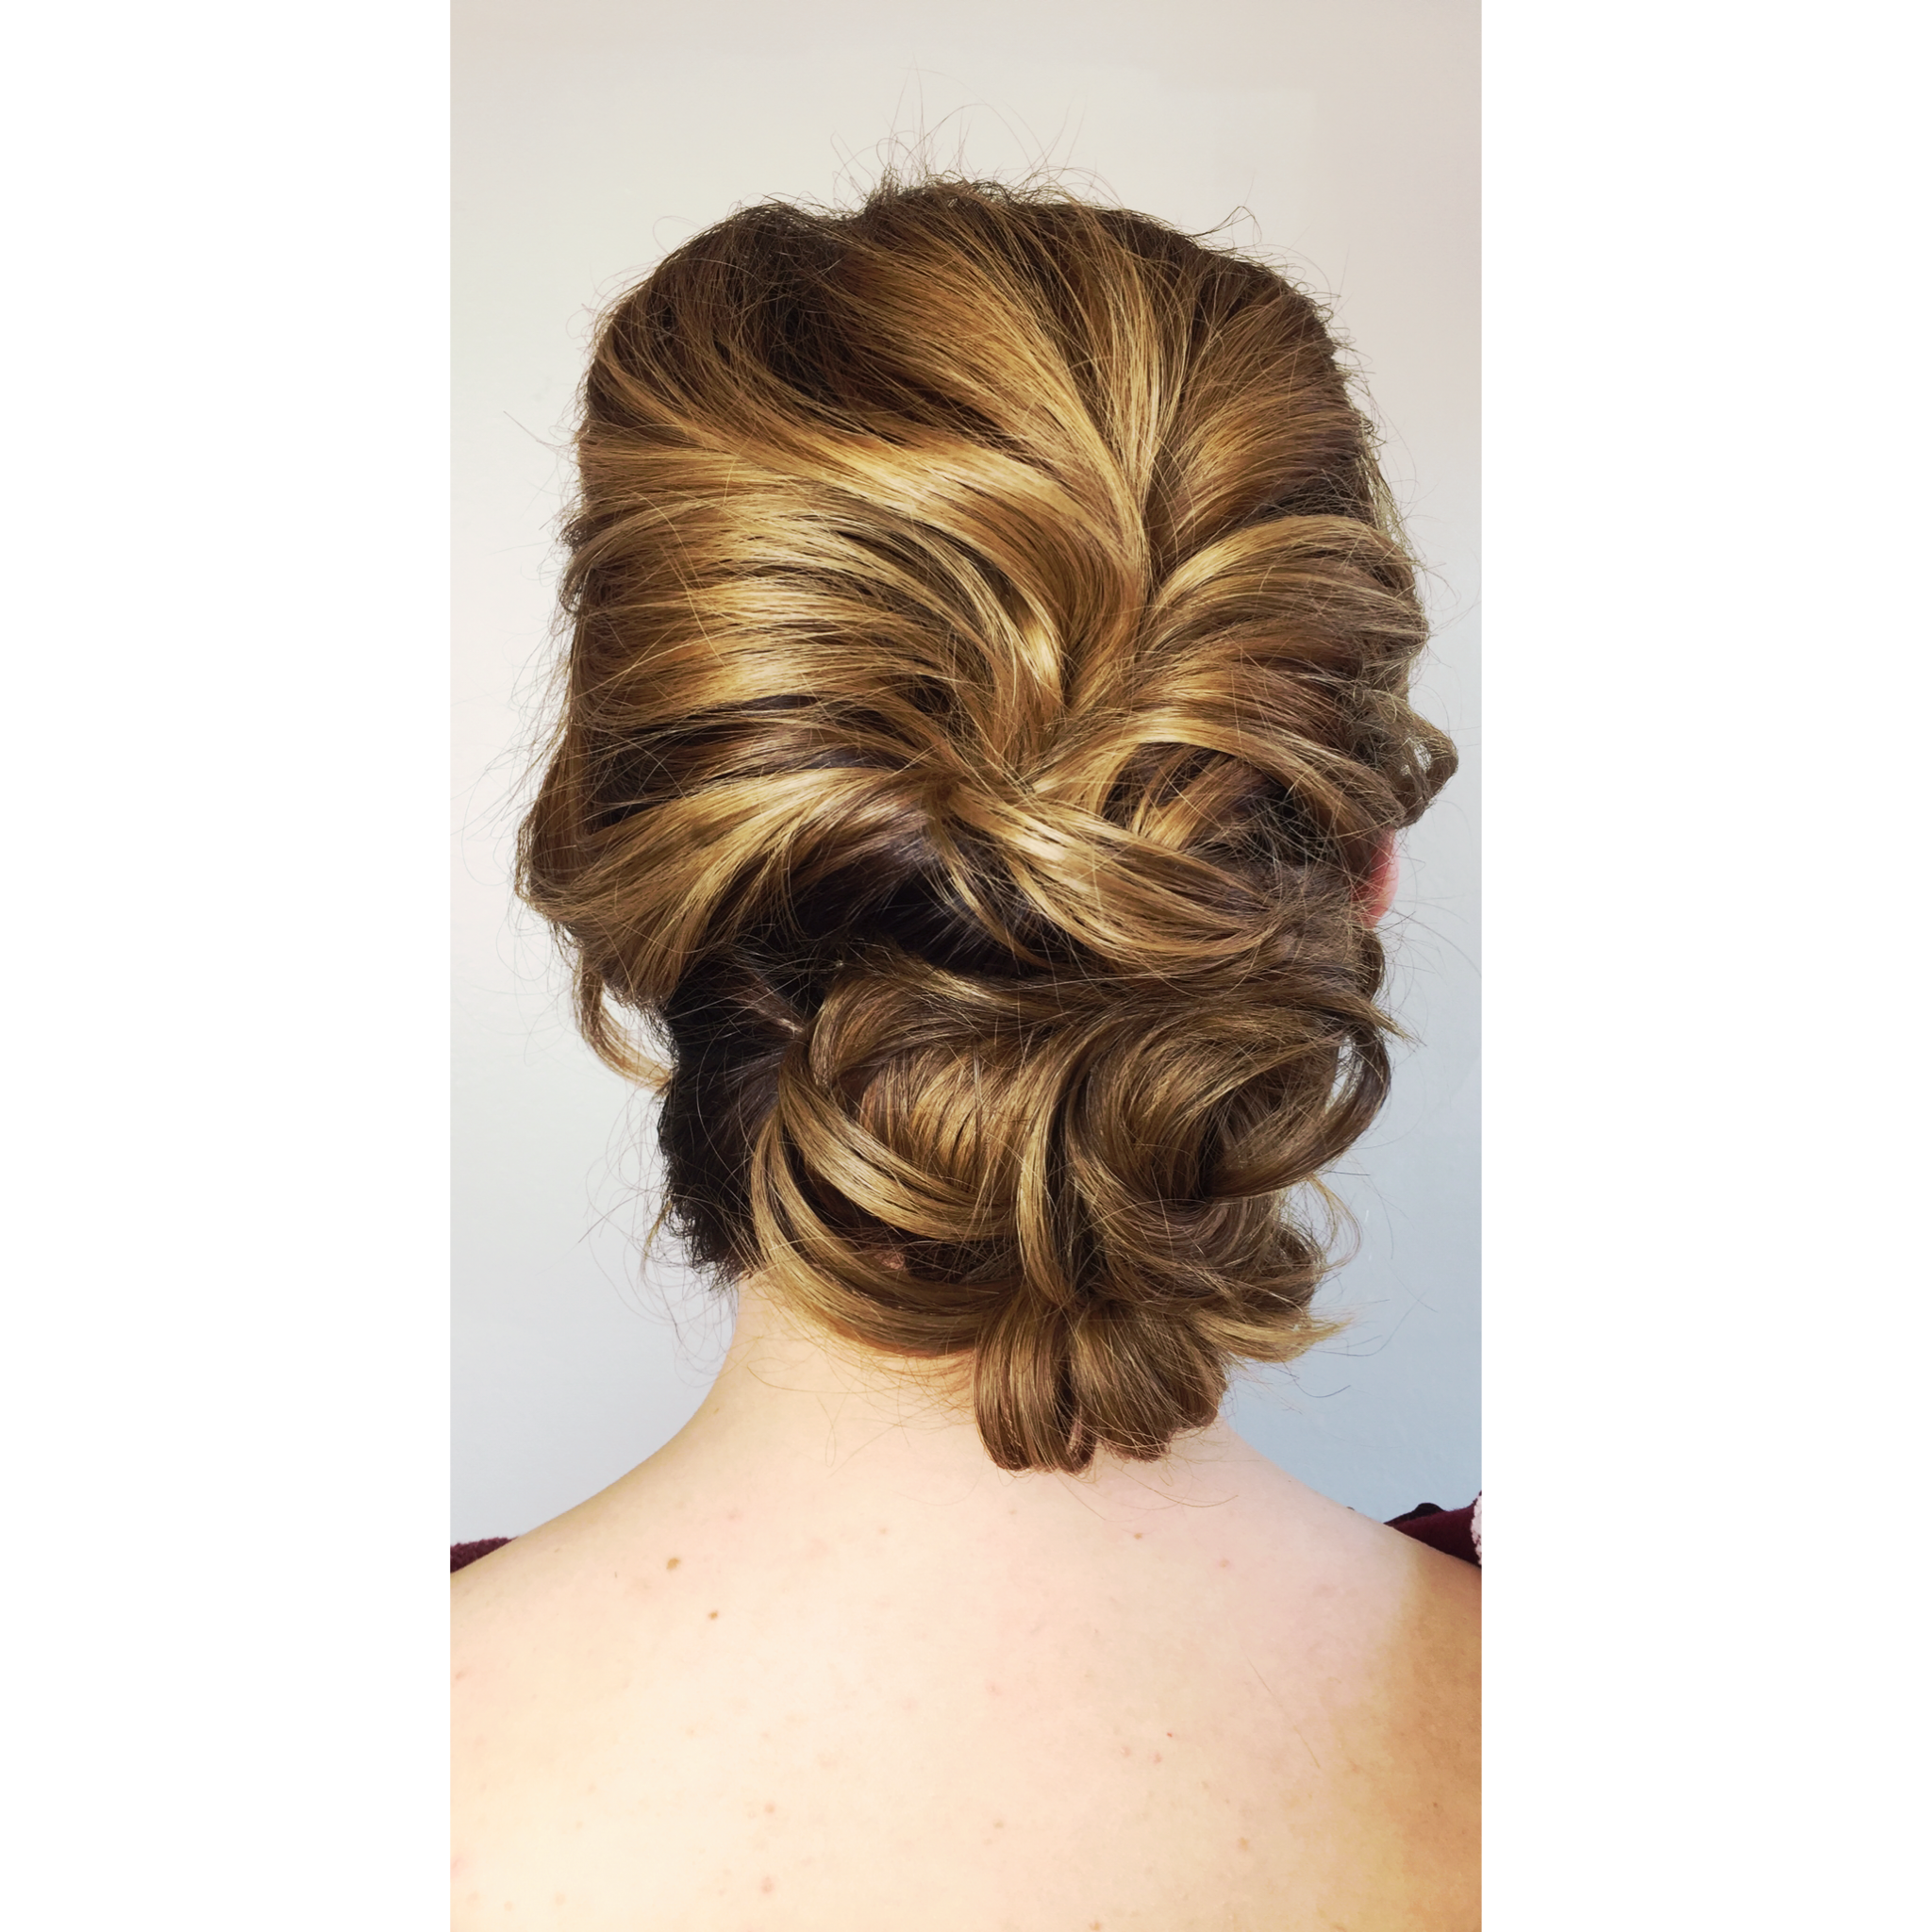 28f75b88fe83 Dimensional upstyling look showcasing balayage highlights color hair color  and updo. Bridal up style bridesmaids bridesmaid bride wedding hair Spring  Summer ...